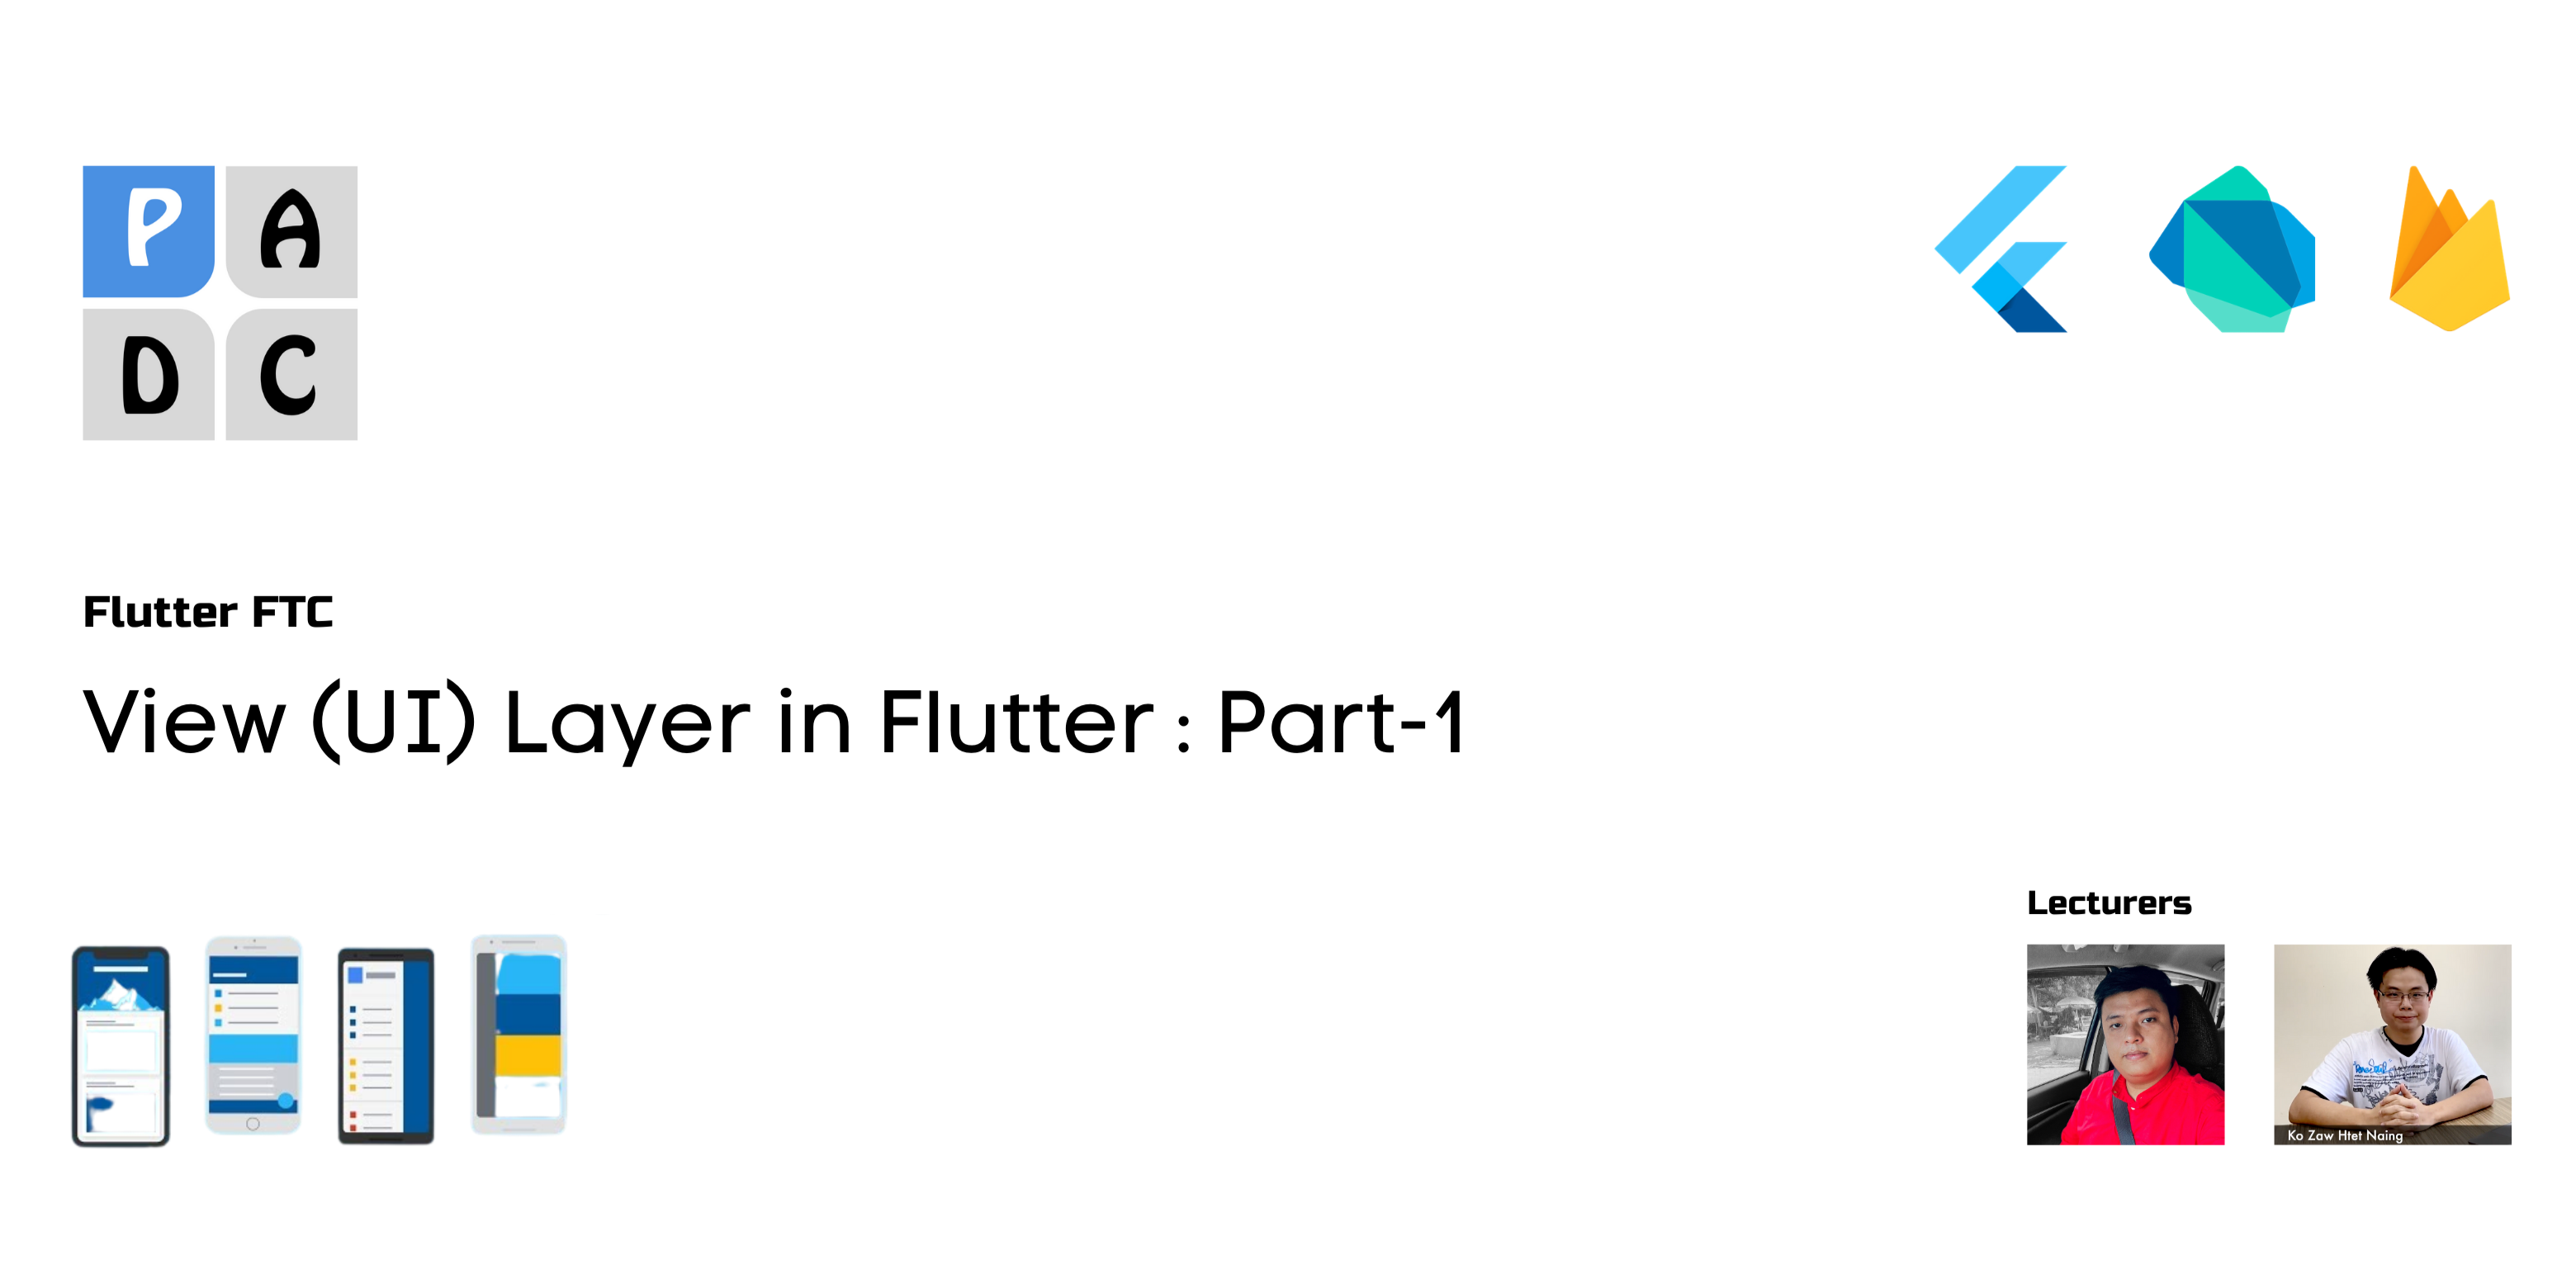 View (UI) Layer in Flutter : the Movie App